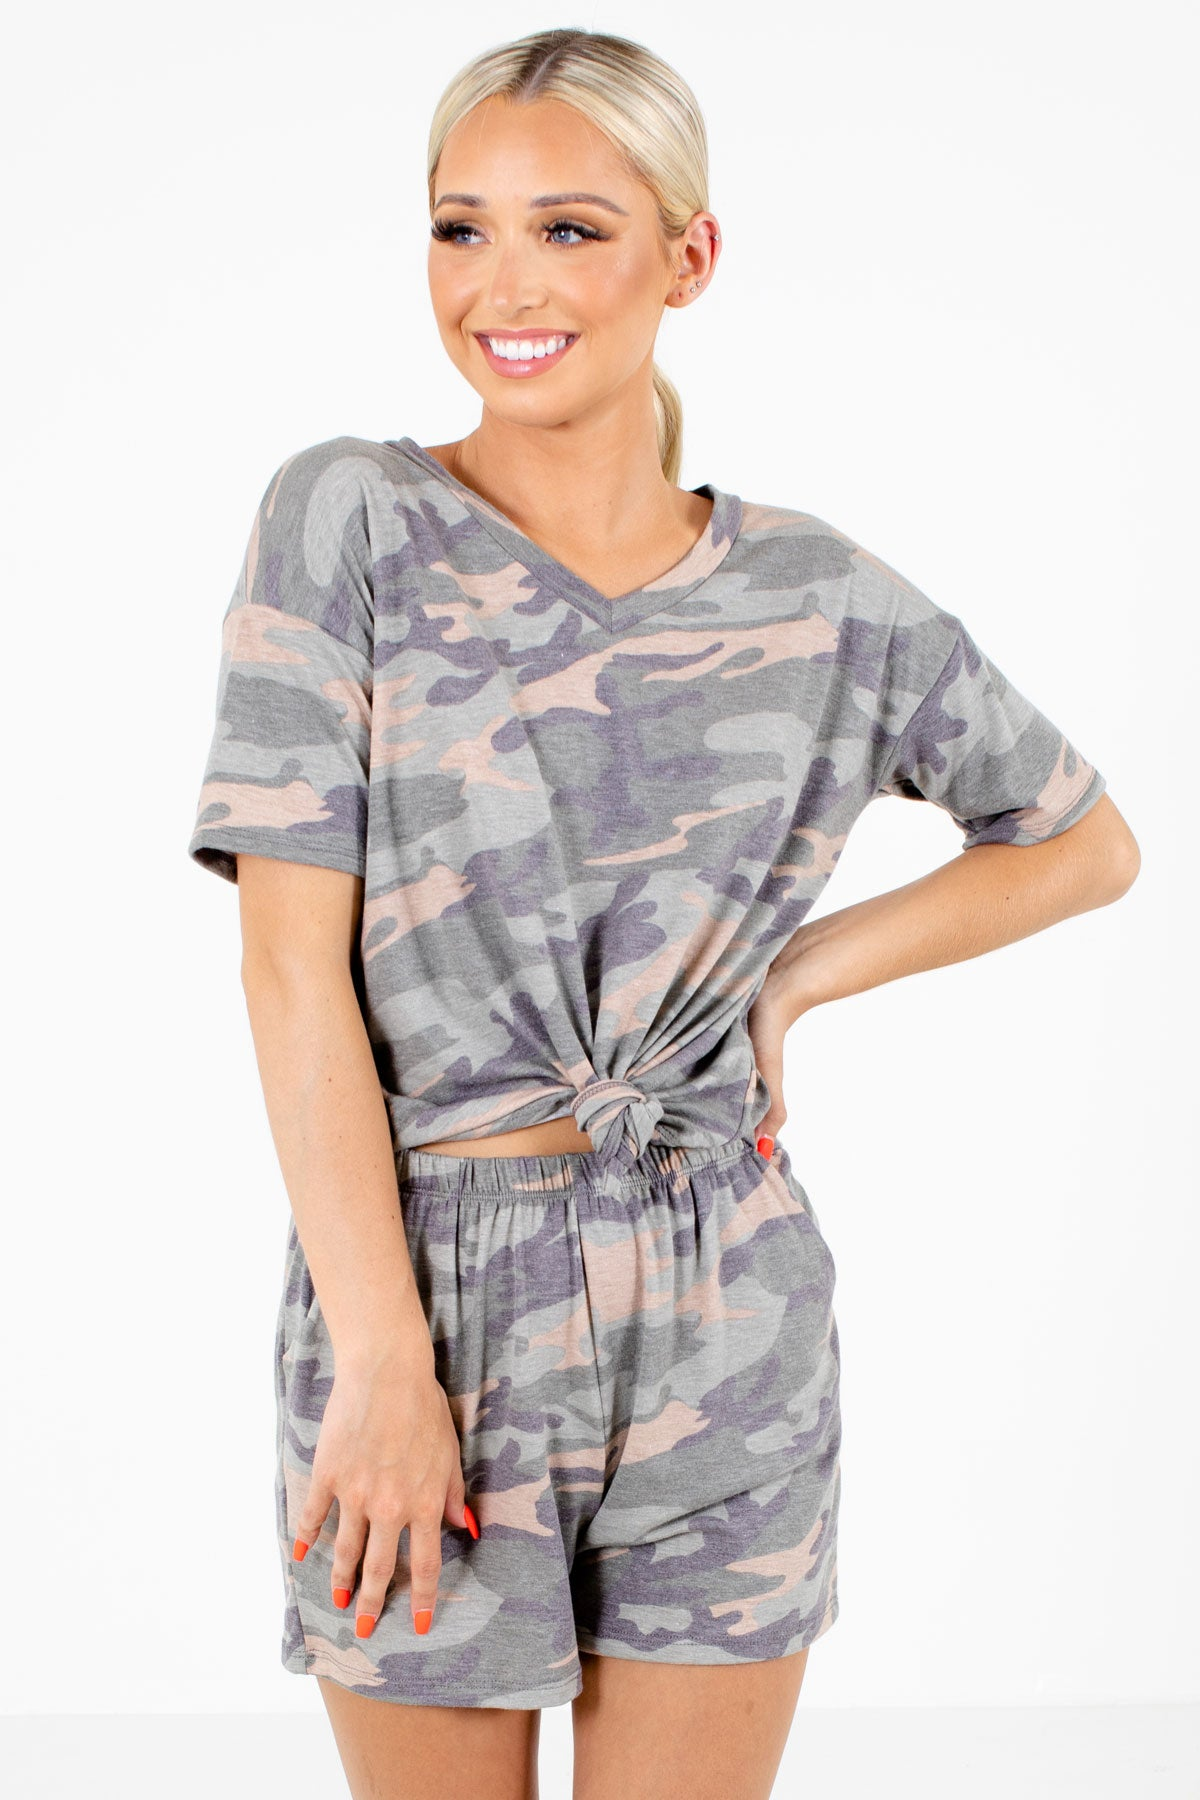 Green Camo Print Boutique Two-Piece Sets for Women